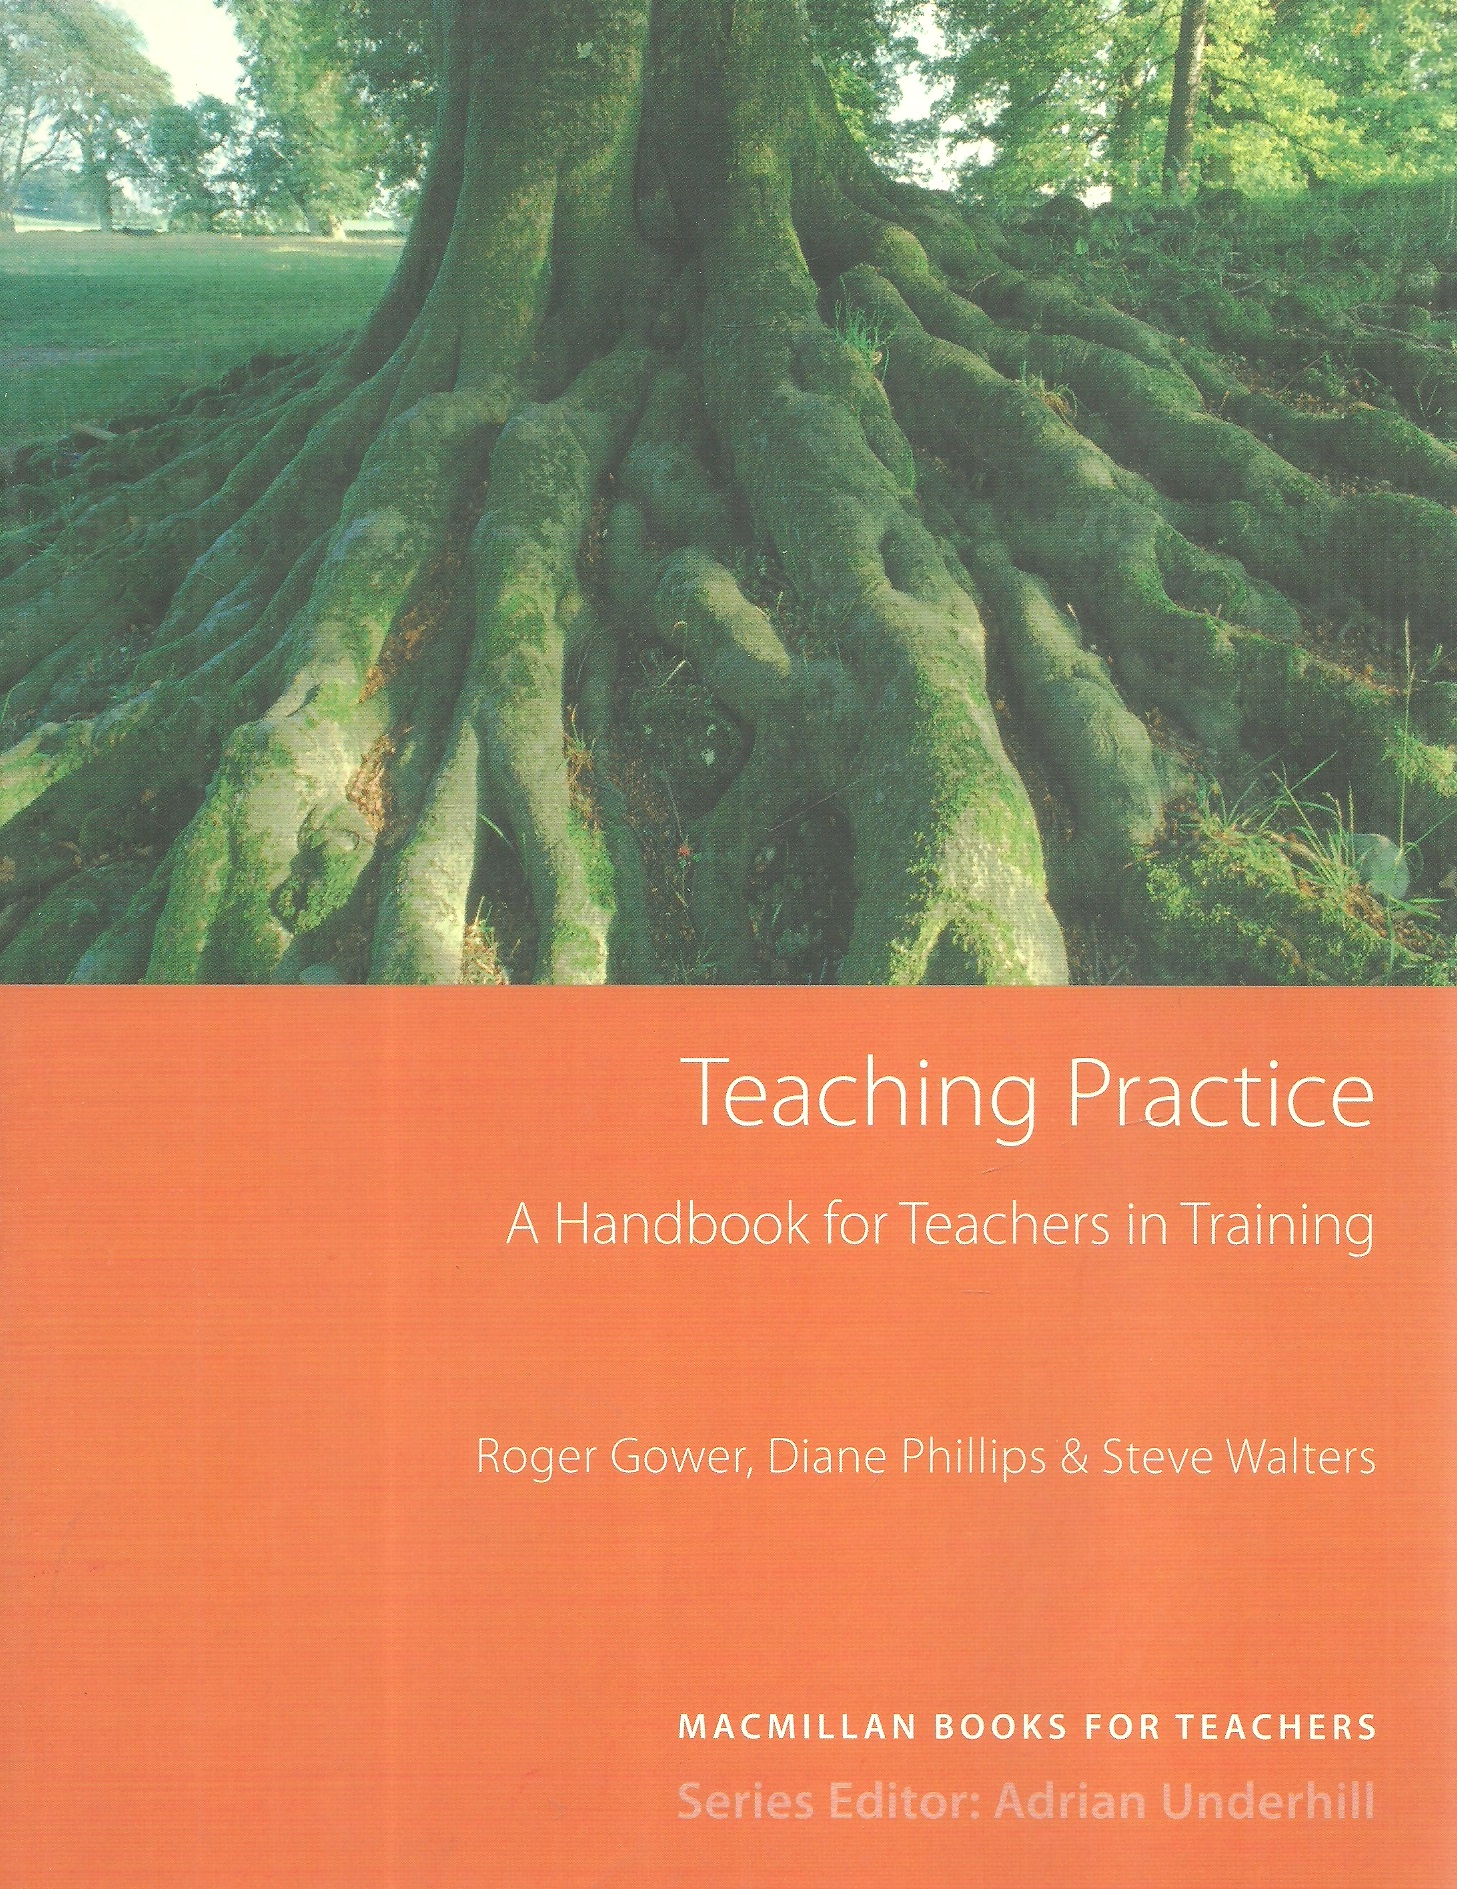 TEACHING PRACTICE handbook for teachers